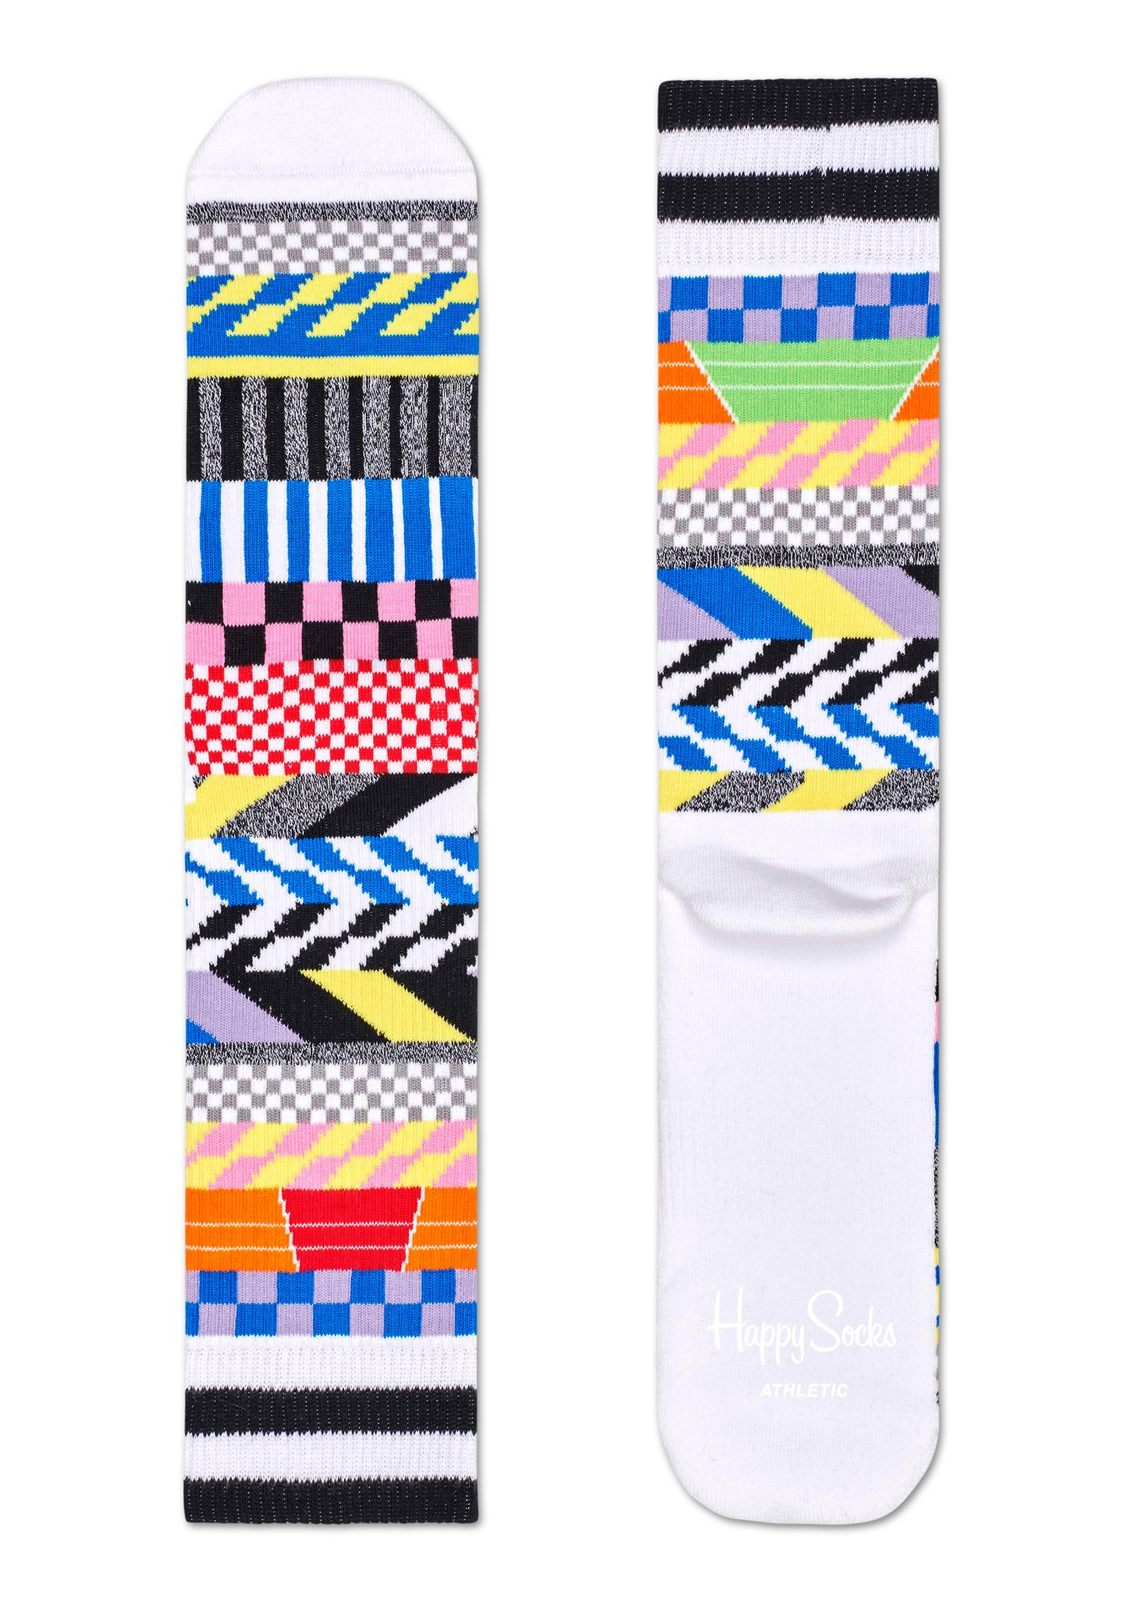 Happy Socks calzini Athletic Checked Stripe multicolore